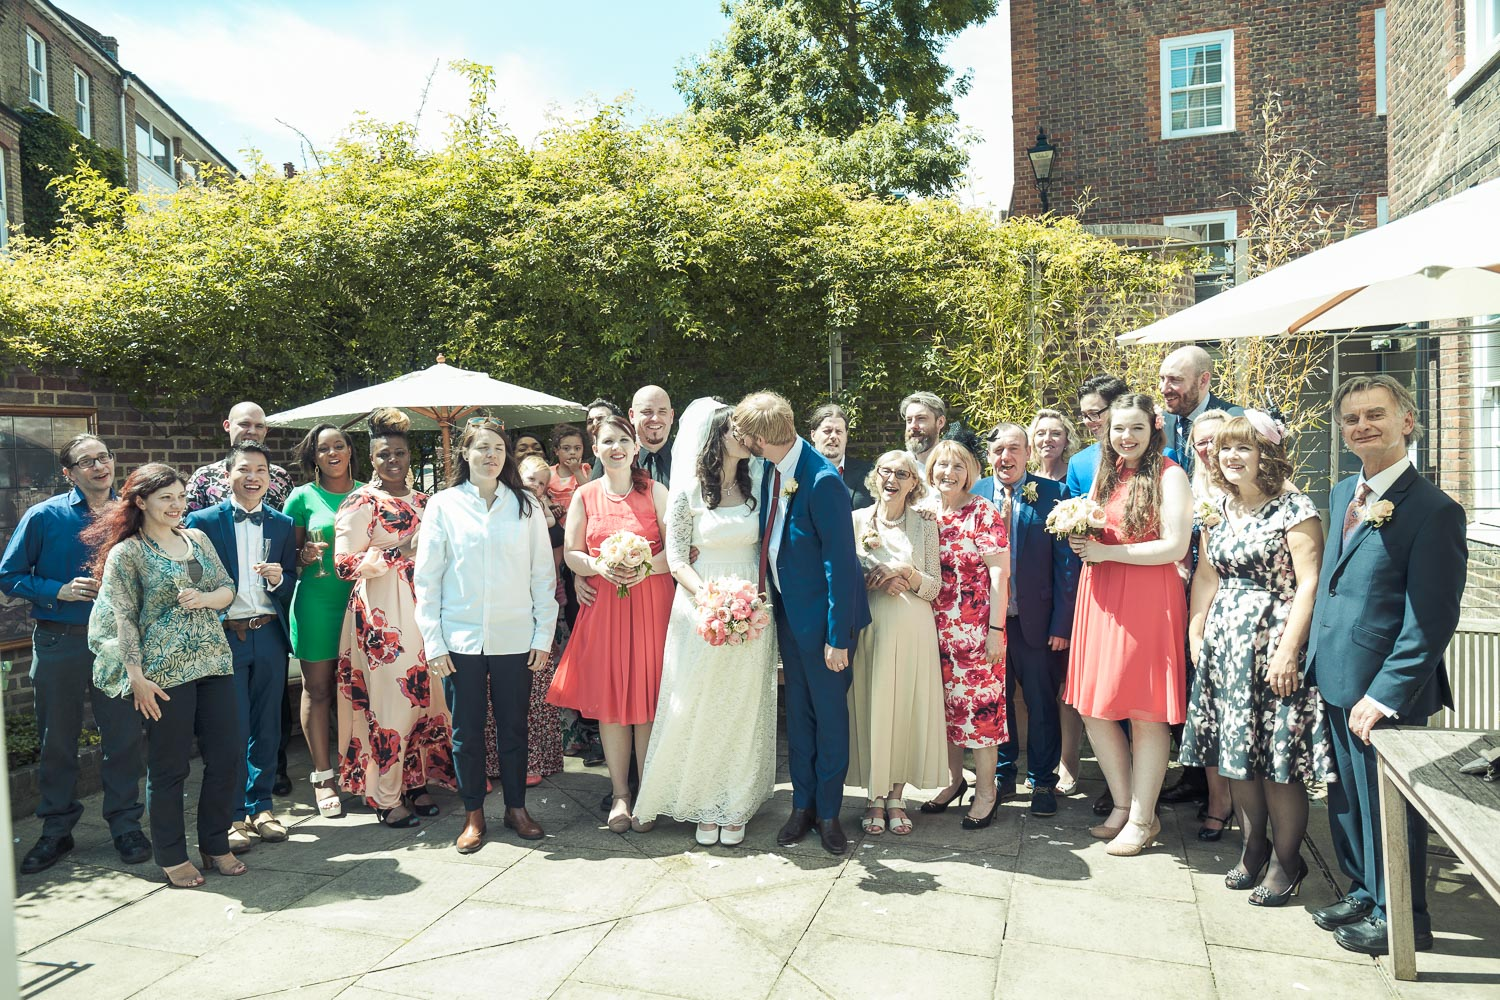 burgh-house-hampstead-north-london-wedding-0109.jpg